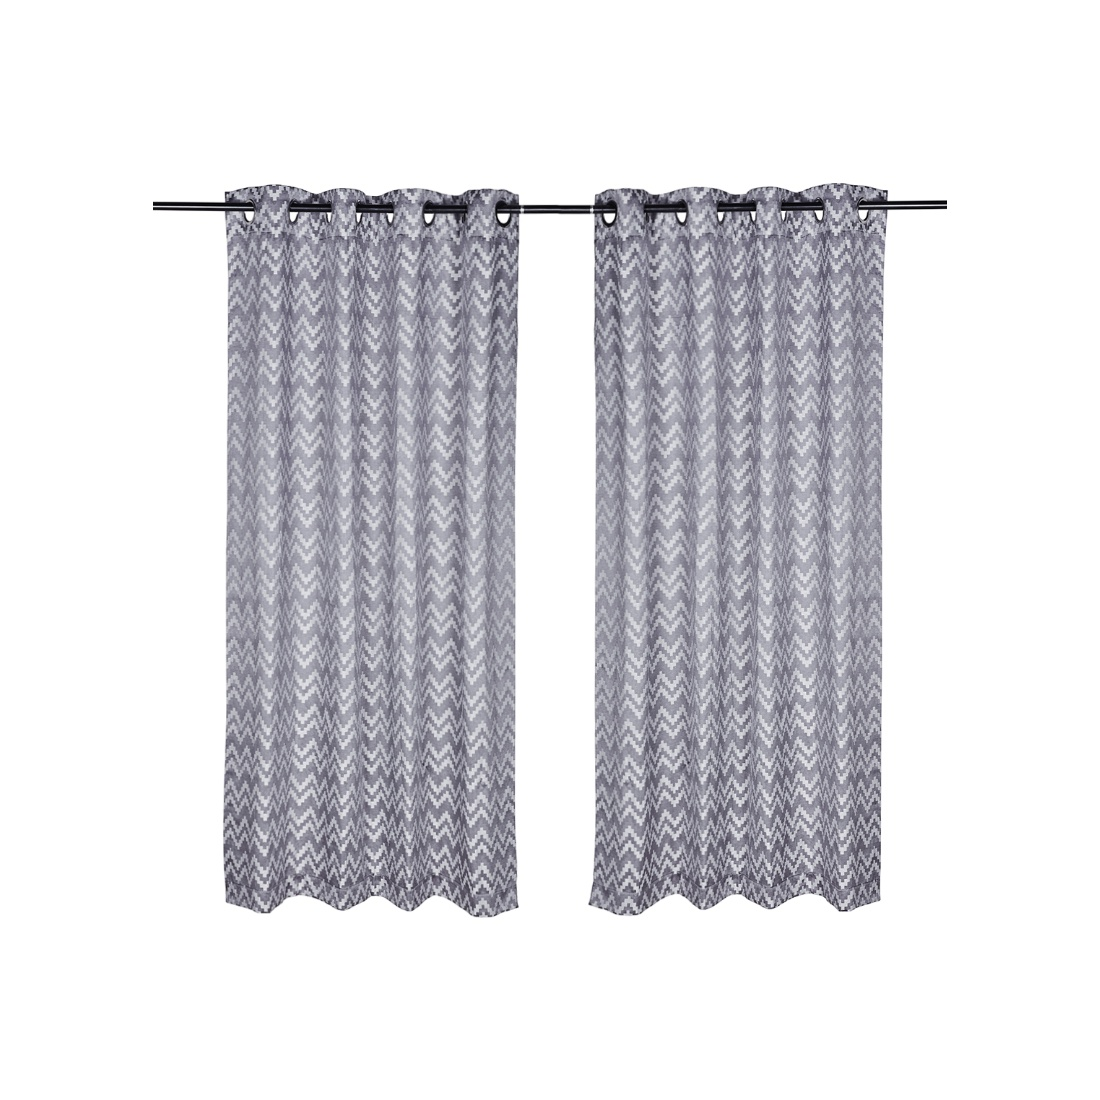 Florina Polyester Window Curtains in Charcoal Colour by Living Essence